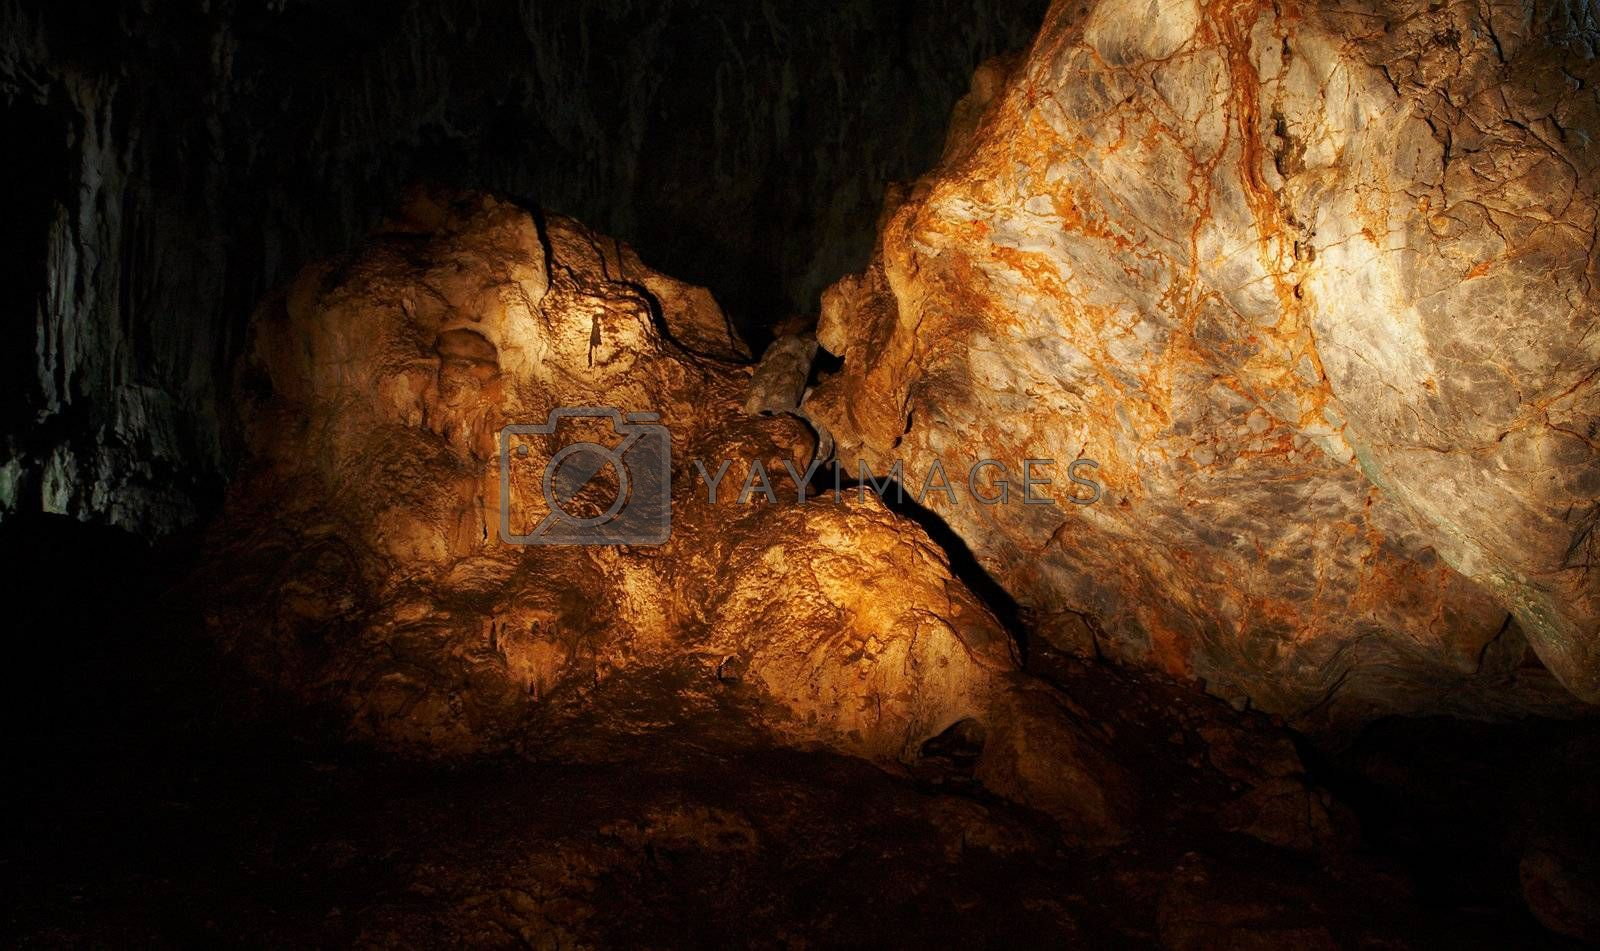 Royalty free image of The amber rock in a cave by DeusNoxious